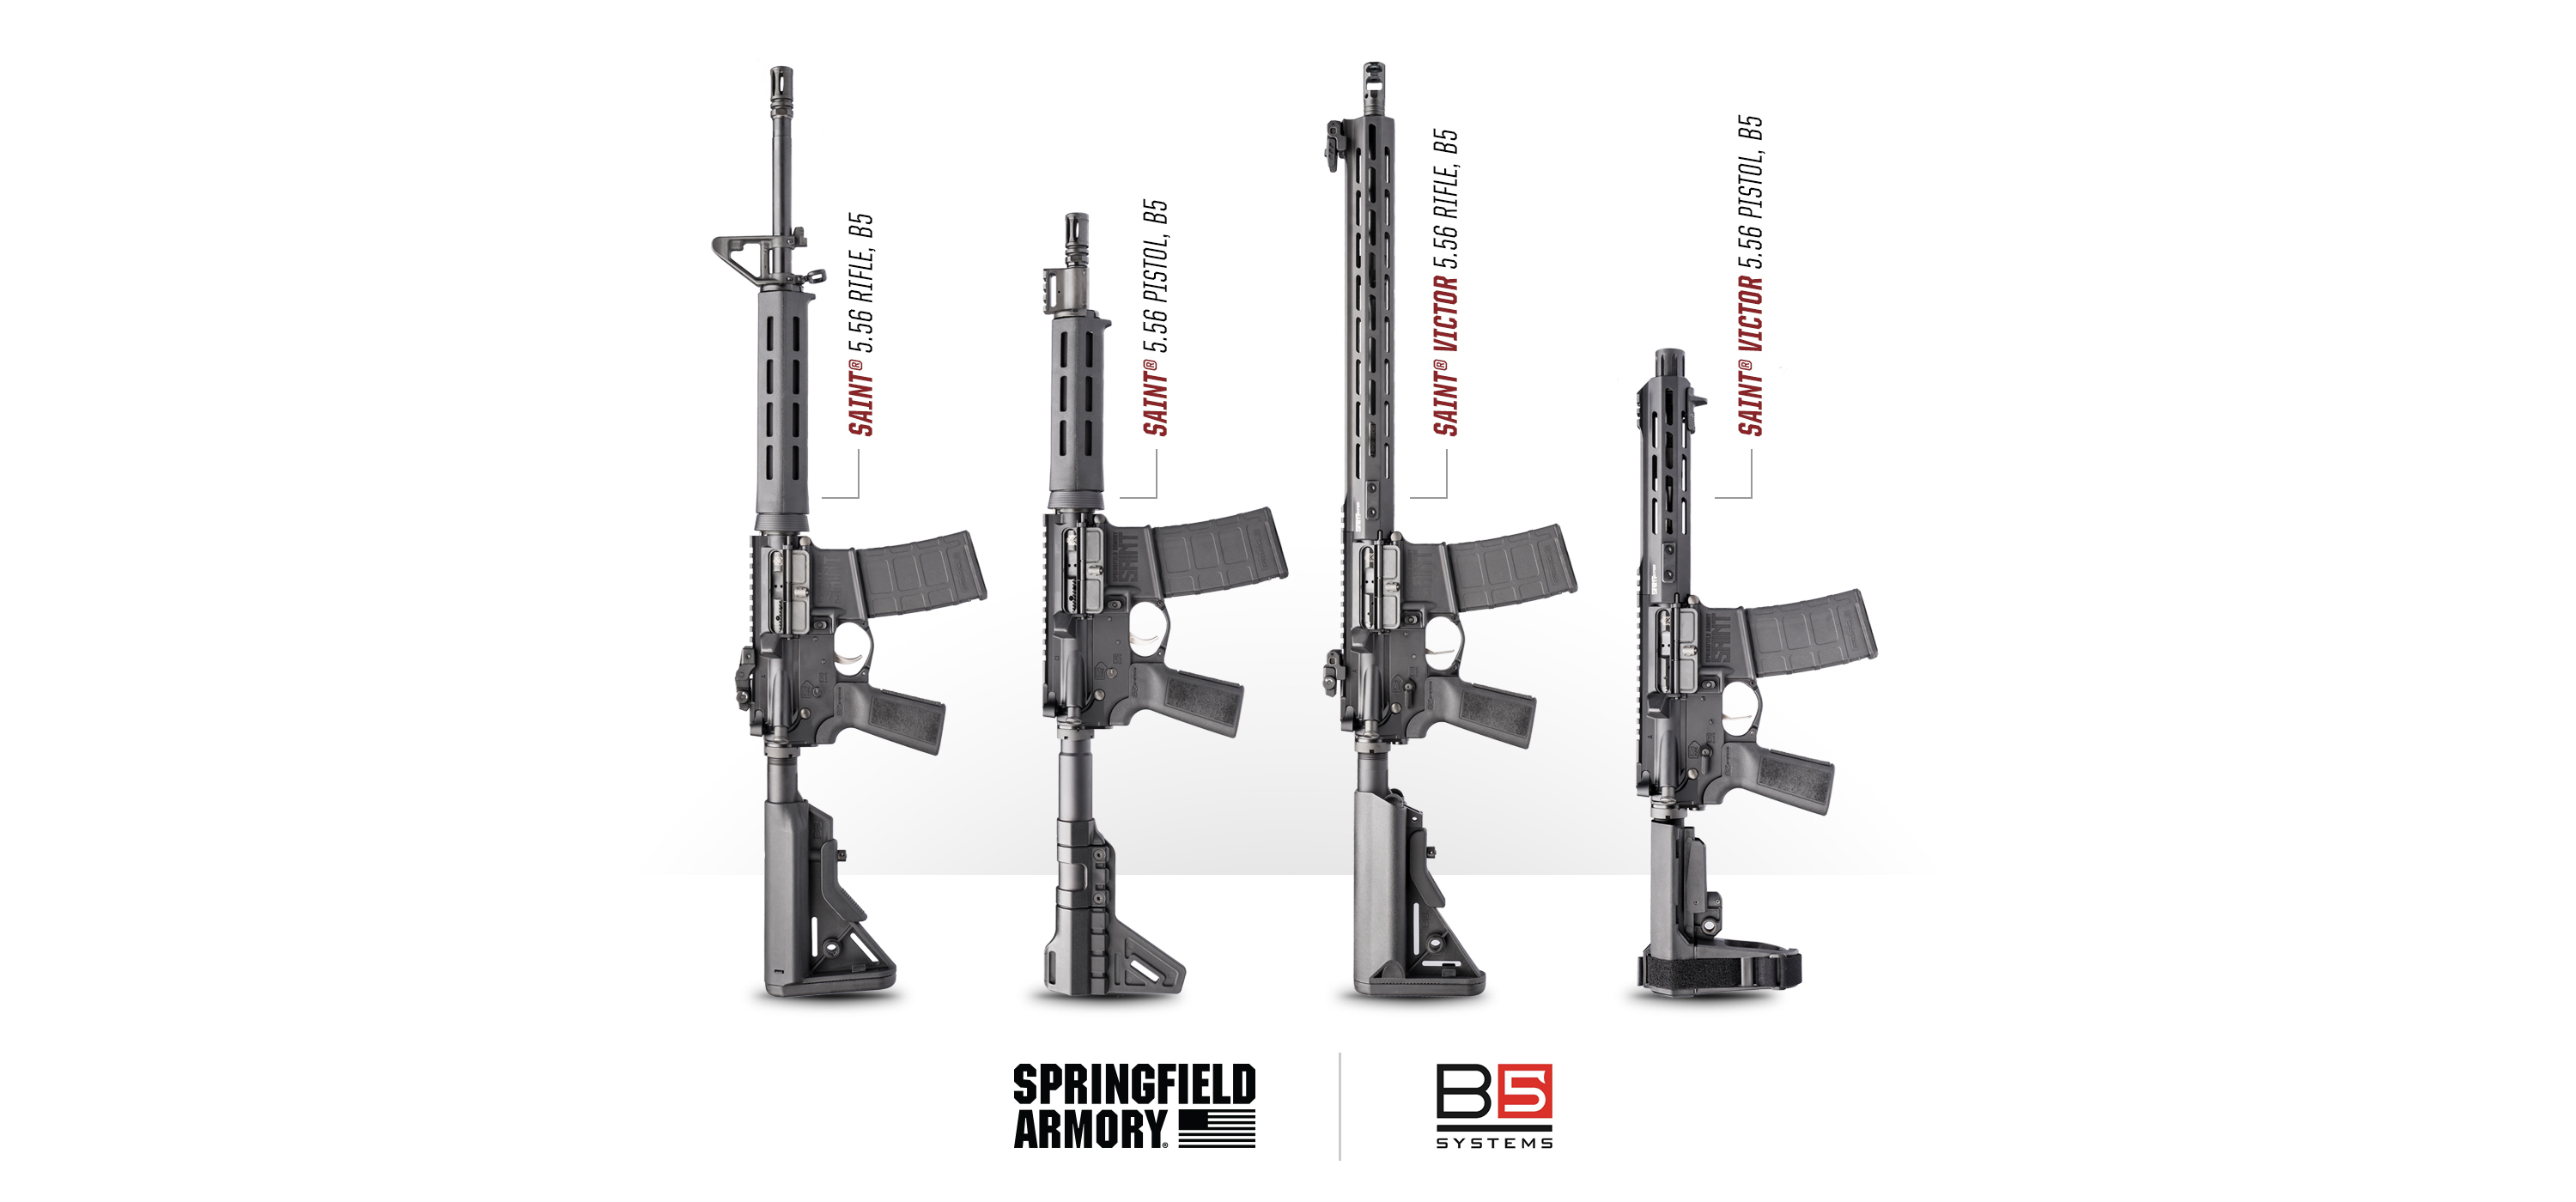 NEW B5 Systems Equipped Springfield SAINT AR-15 Rifles & Pistols